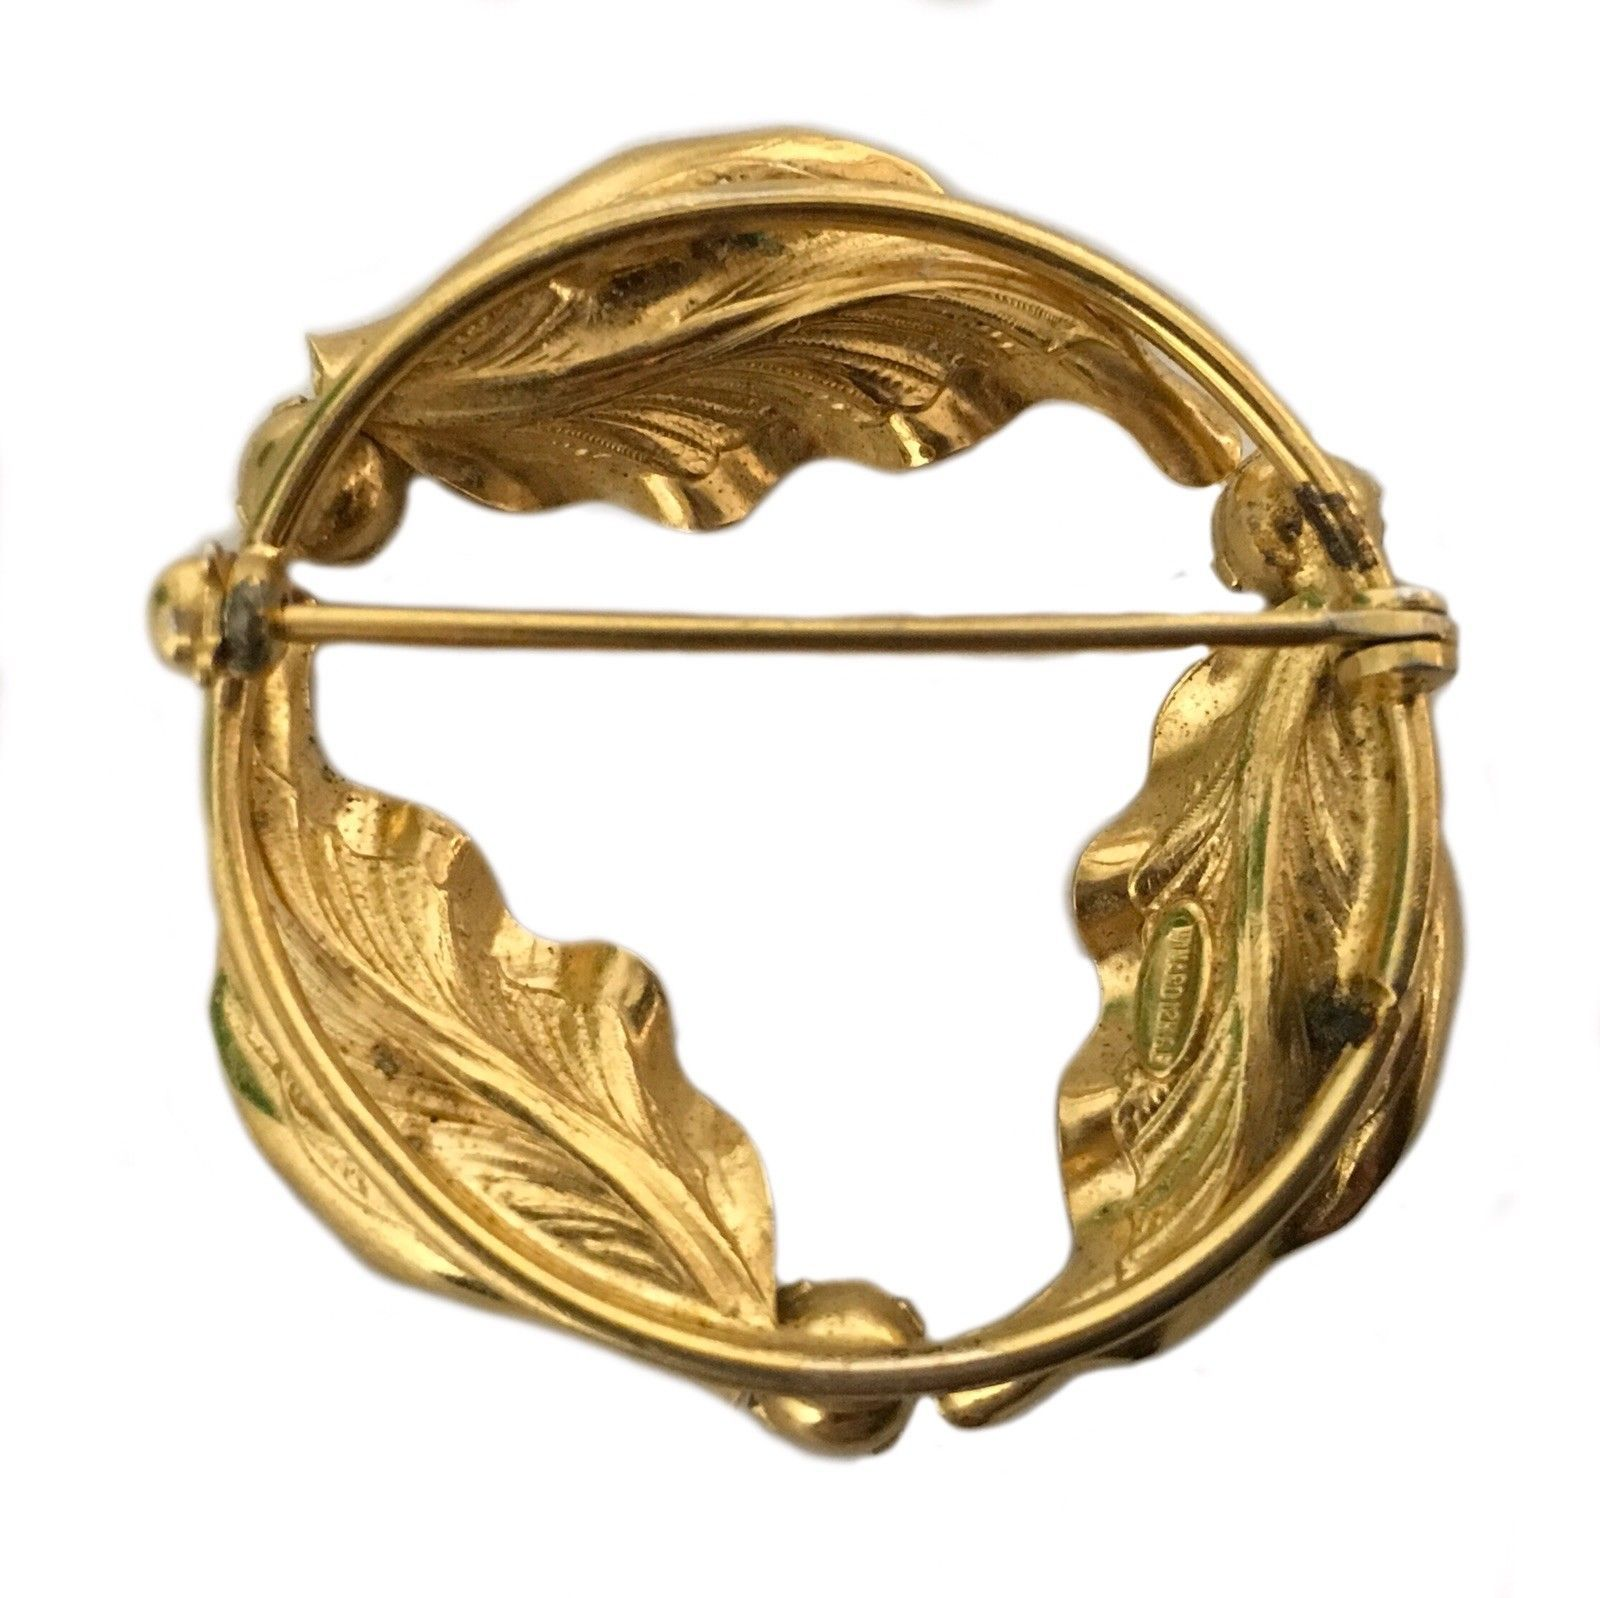 Vintage Windar Gold Plated 12k Brooch Pin Costume Jewelry